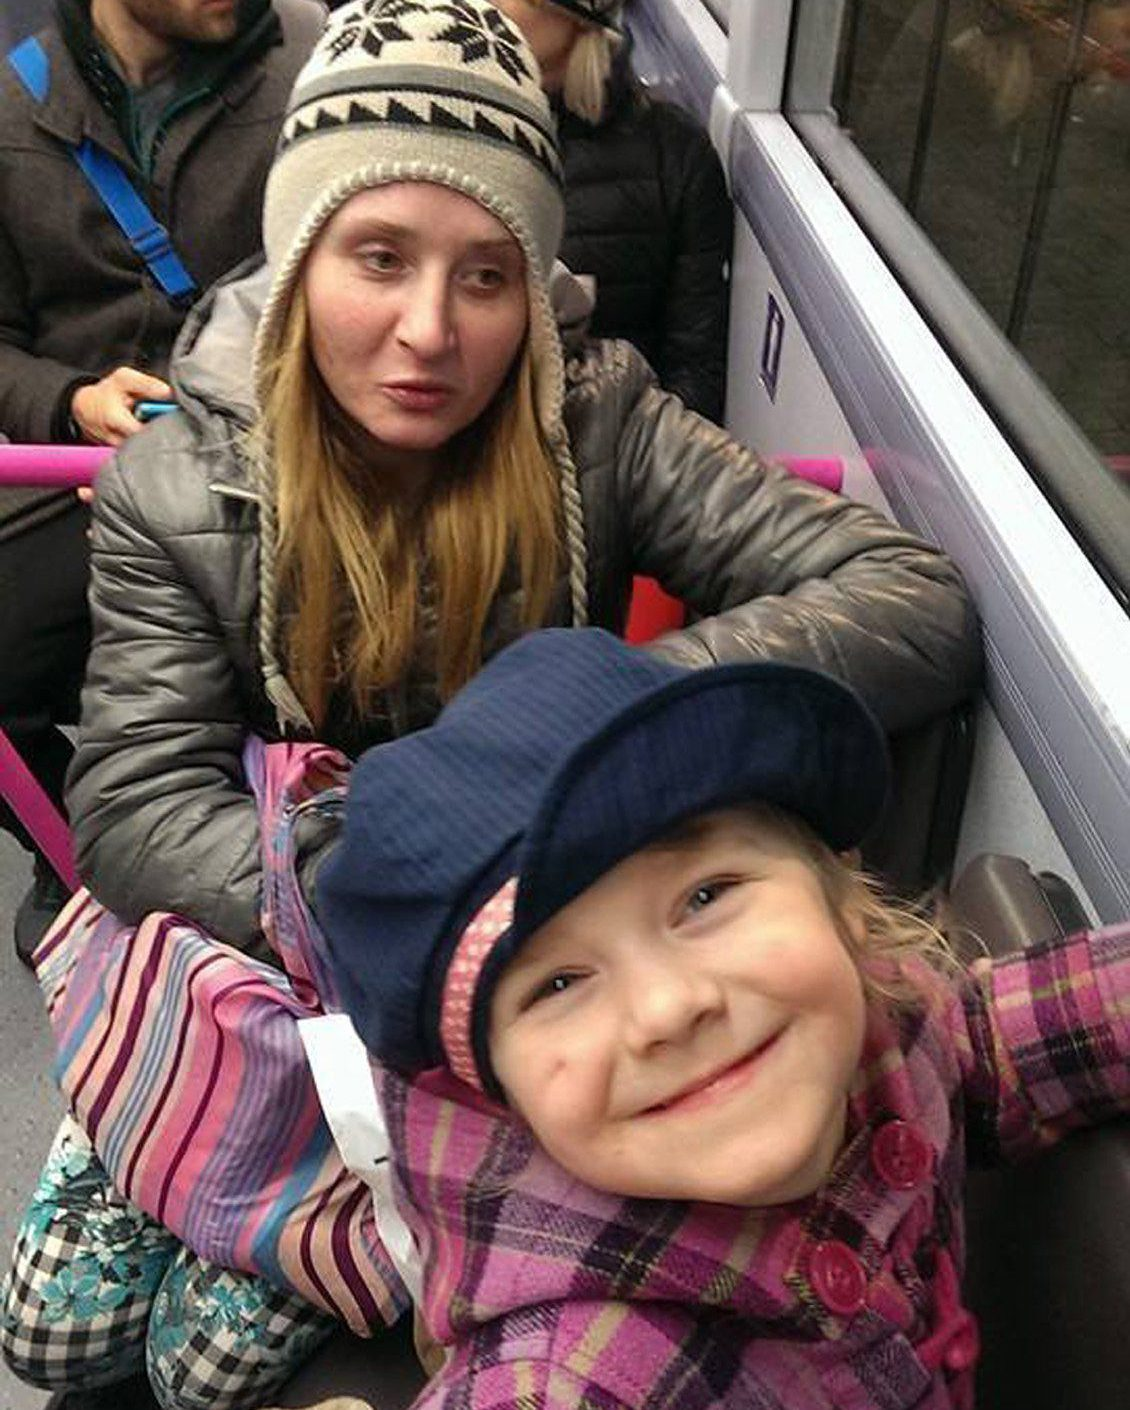 Undated handout photo issued by West Yorkshire Police of Alicja Dworakowska, 29, and her five-year-old daughter, as police are urging the heavily pregnant woman to get in touch after she was reported missing with her daughter. PRESS ASSOCIATION Photo. Issue date: Tuesday February 14, 2017. Ms Dworakowska and her daughter, from the Beeston area of Leeds, were last heard from on Monday, West Yorkshire Police said. See PA story POLICE Pregnant. Photo credit should read: West Yorkshire Police/PA Wire NOTE TO EDITORS: This handout photo may only be used in for editorial reporting purposes for the contemporaneous illustration of events, things or the people in the image or facts mentioned in the caption. Reuse of the picture may require further permission from the copyright holder.